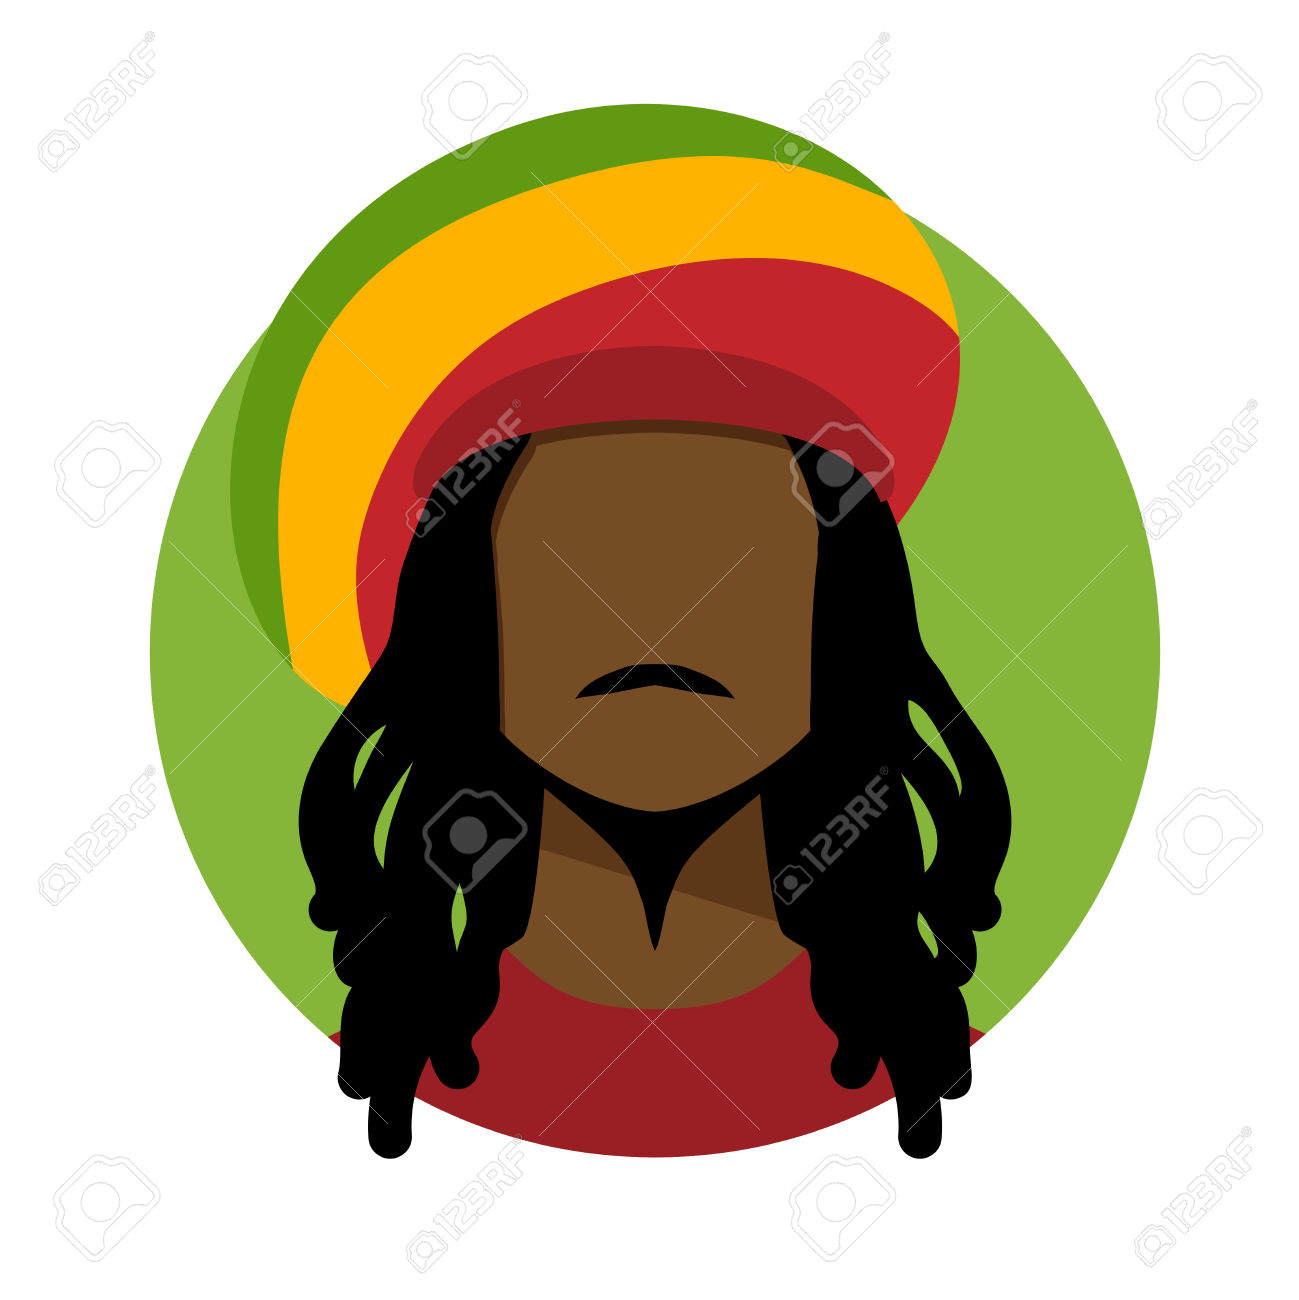 Dread head sitting clipart.